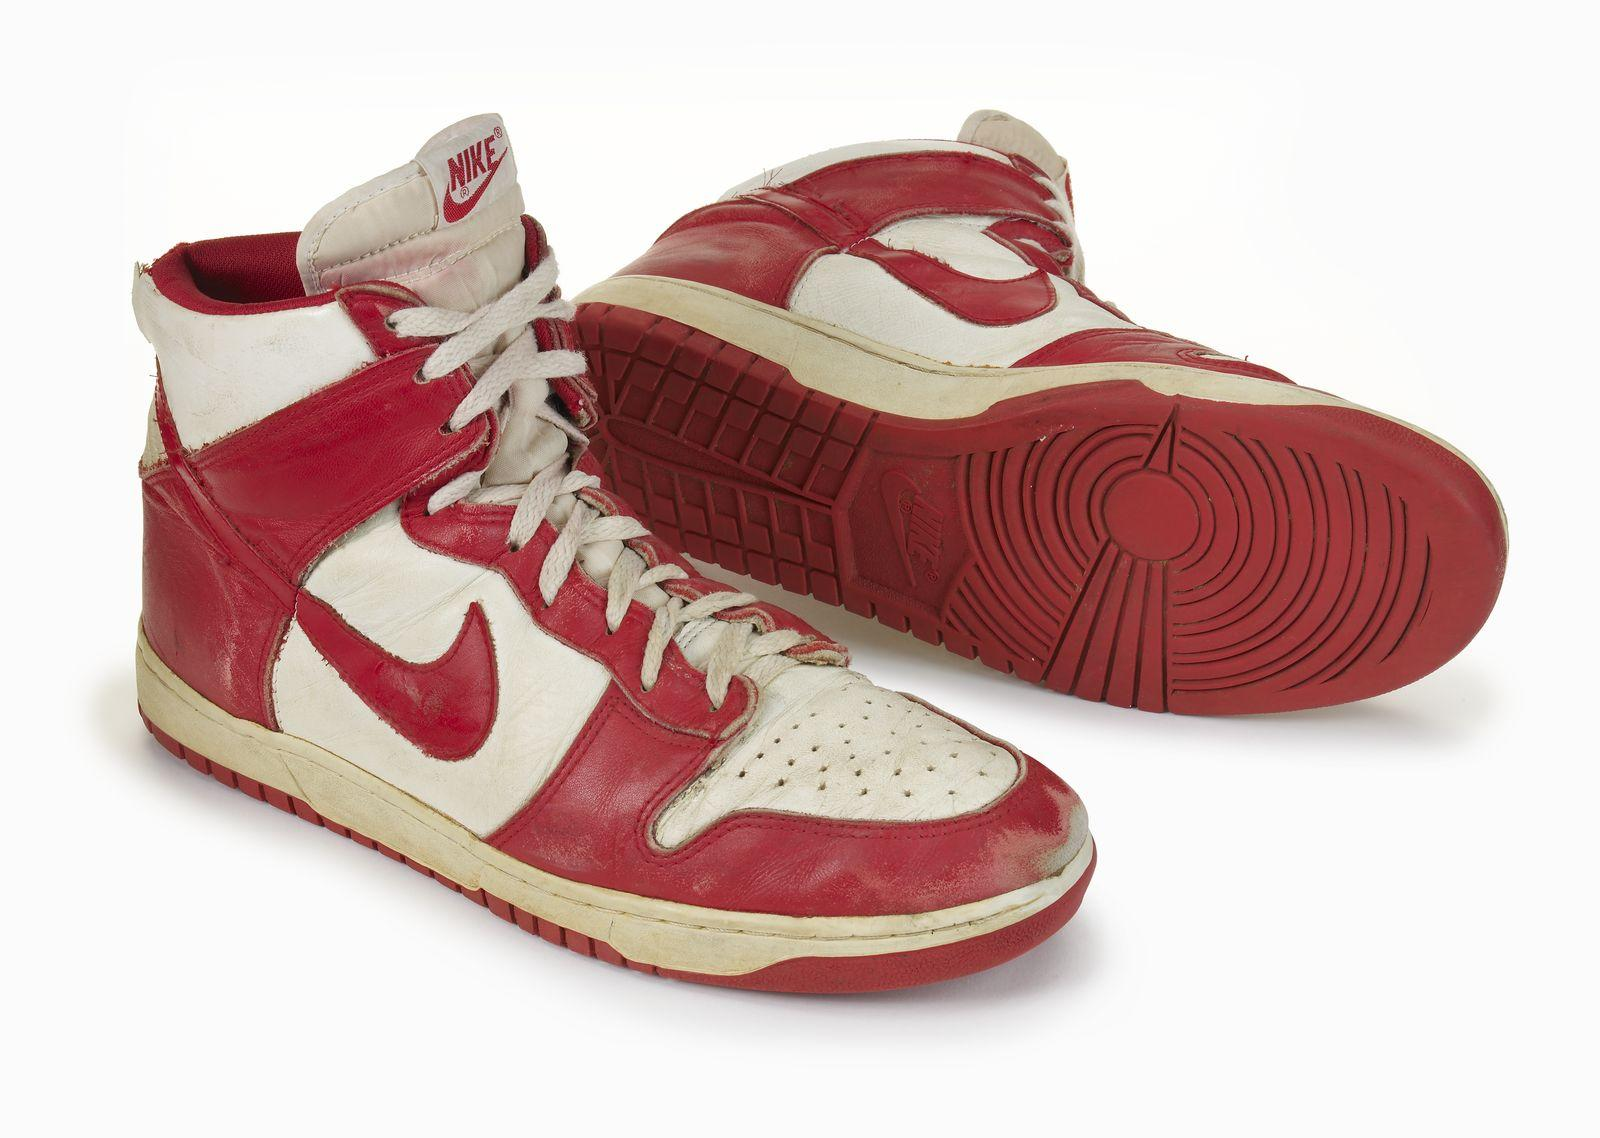 timeless design 902f9 5f7d8 20936 20937 2. Original Nike Dunk High ...